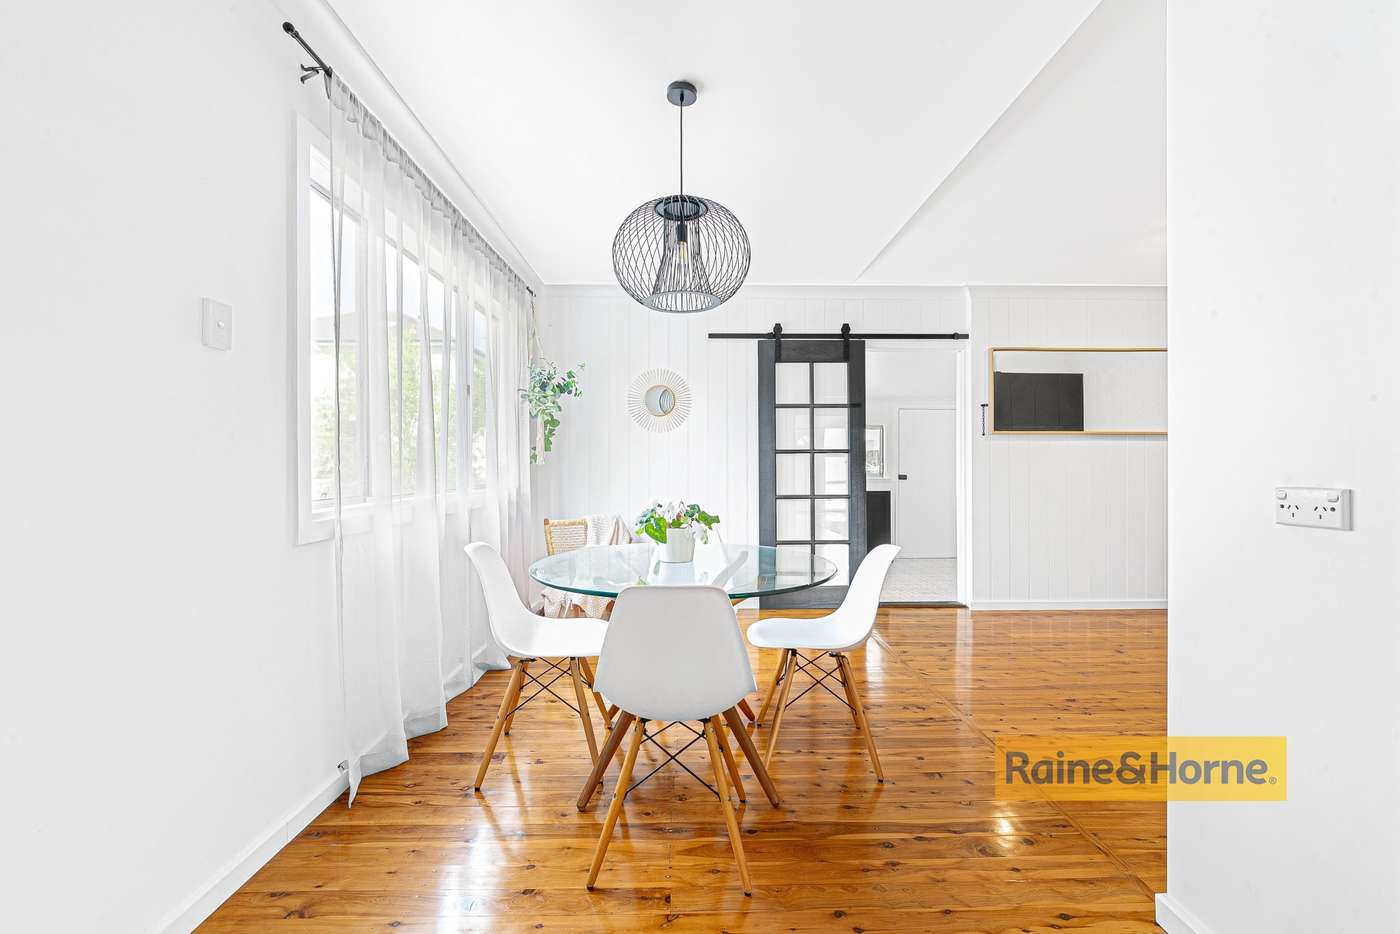 Fifth view of Homely house listing, 1 Boongala Avenue, Empire Bay NSW 2257